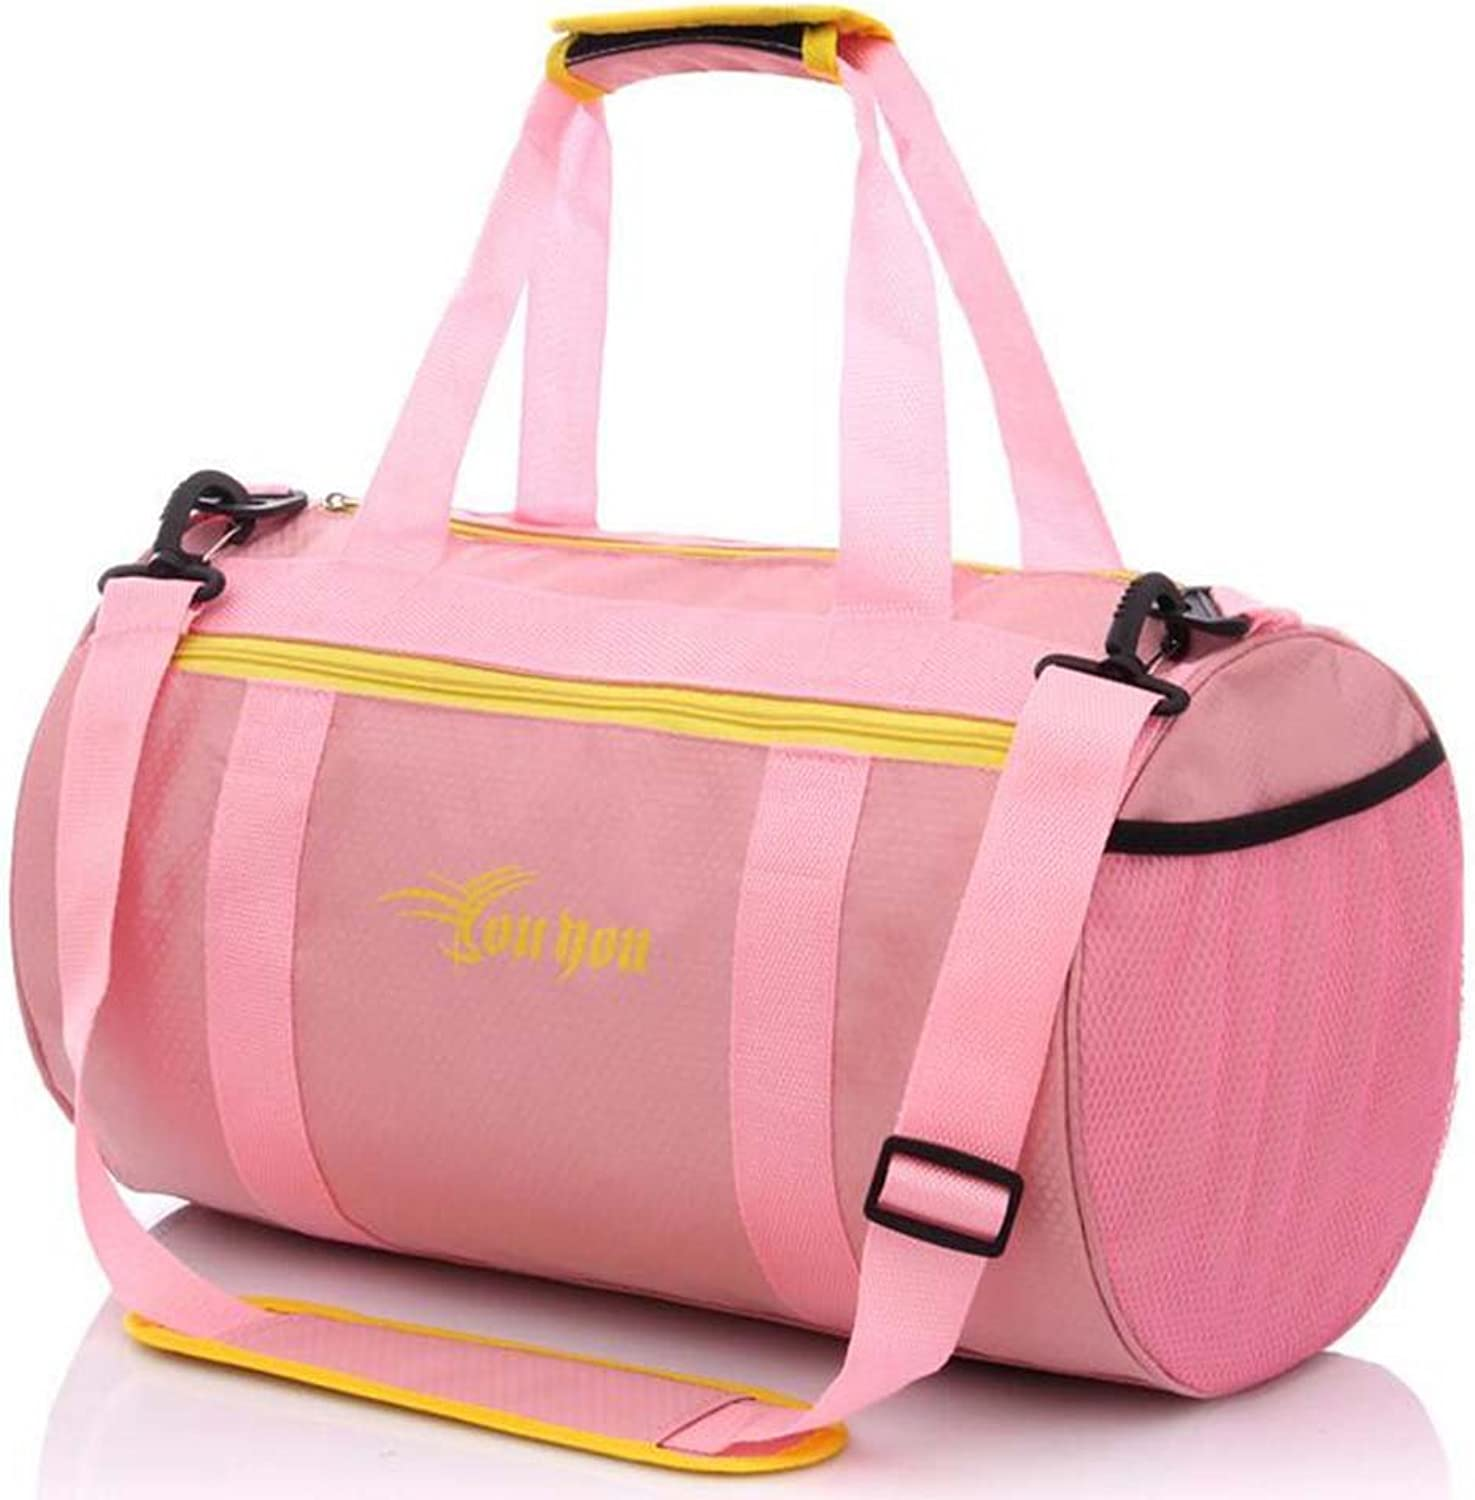 Calunce Waterproof Sports Bag Dry and Wet Separation Handbag Organizer for Swimming,Fitness,Gym,Camping,Drifting,Fishing and more,Many colors available,cylindraceous,pink